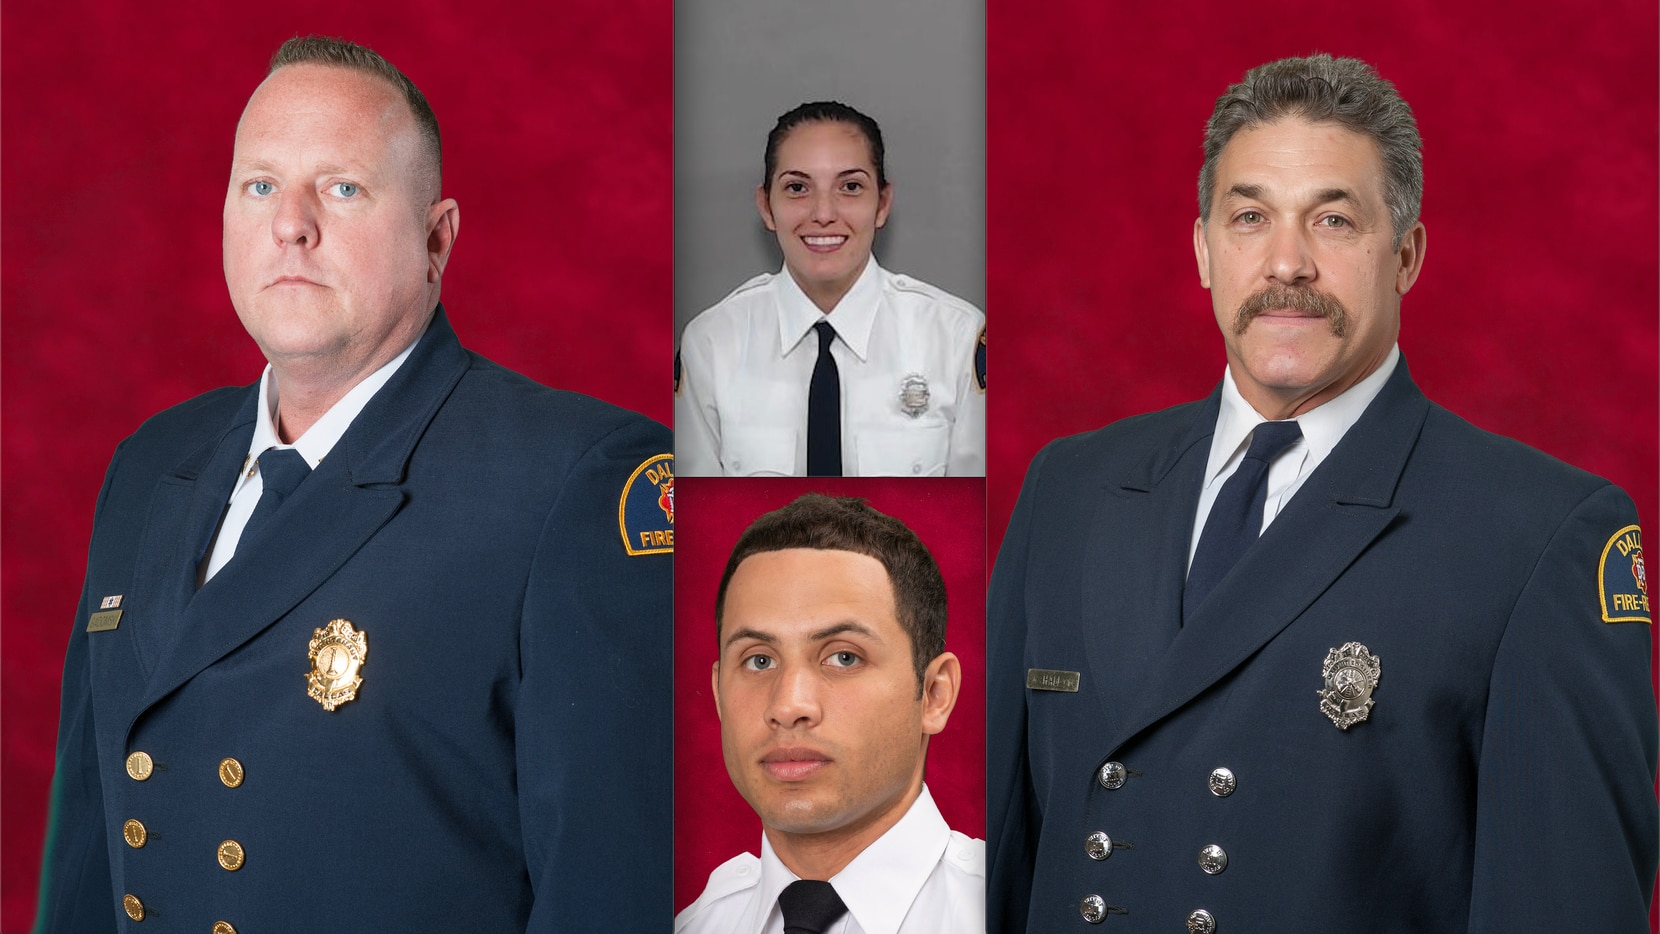 Dallas Fire-Rescue identified the four firefighters who were injured at the Highland Hills Apartments explosion on Sept. 29. Clockwise from left: Capt. Christopher Gadomski, Officer Pauline Perez, Driver Engineer Ronald W. Hall and Officer Andrew D. Curtis.